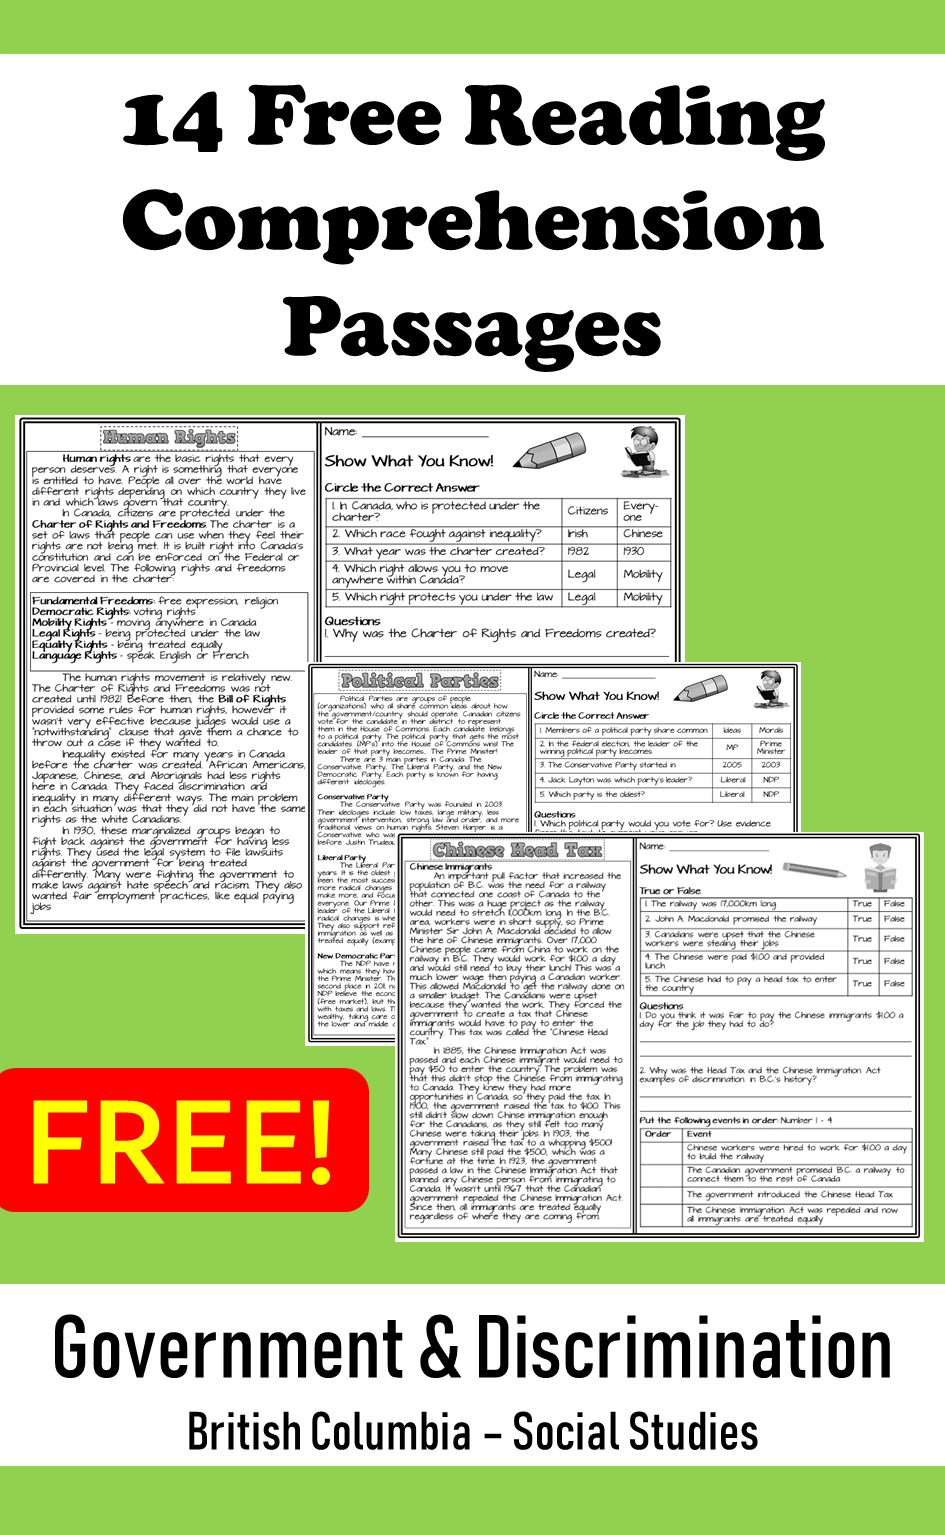 hight resolution of 14 Free Reading Comprehension Passages for British Columbia Social Studies    Reading comprehension passages